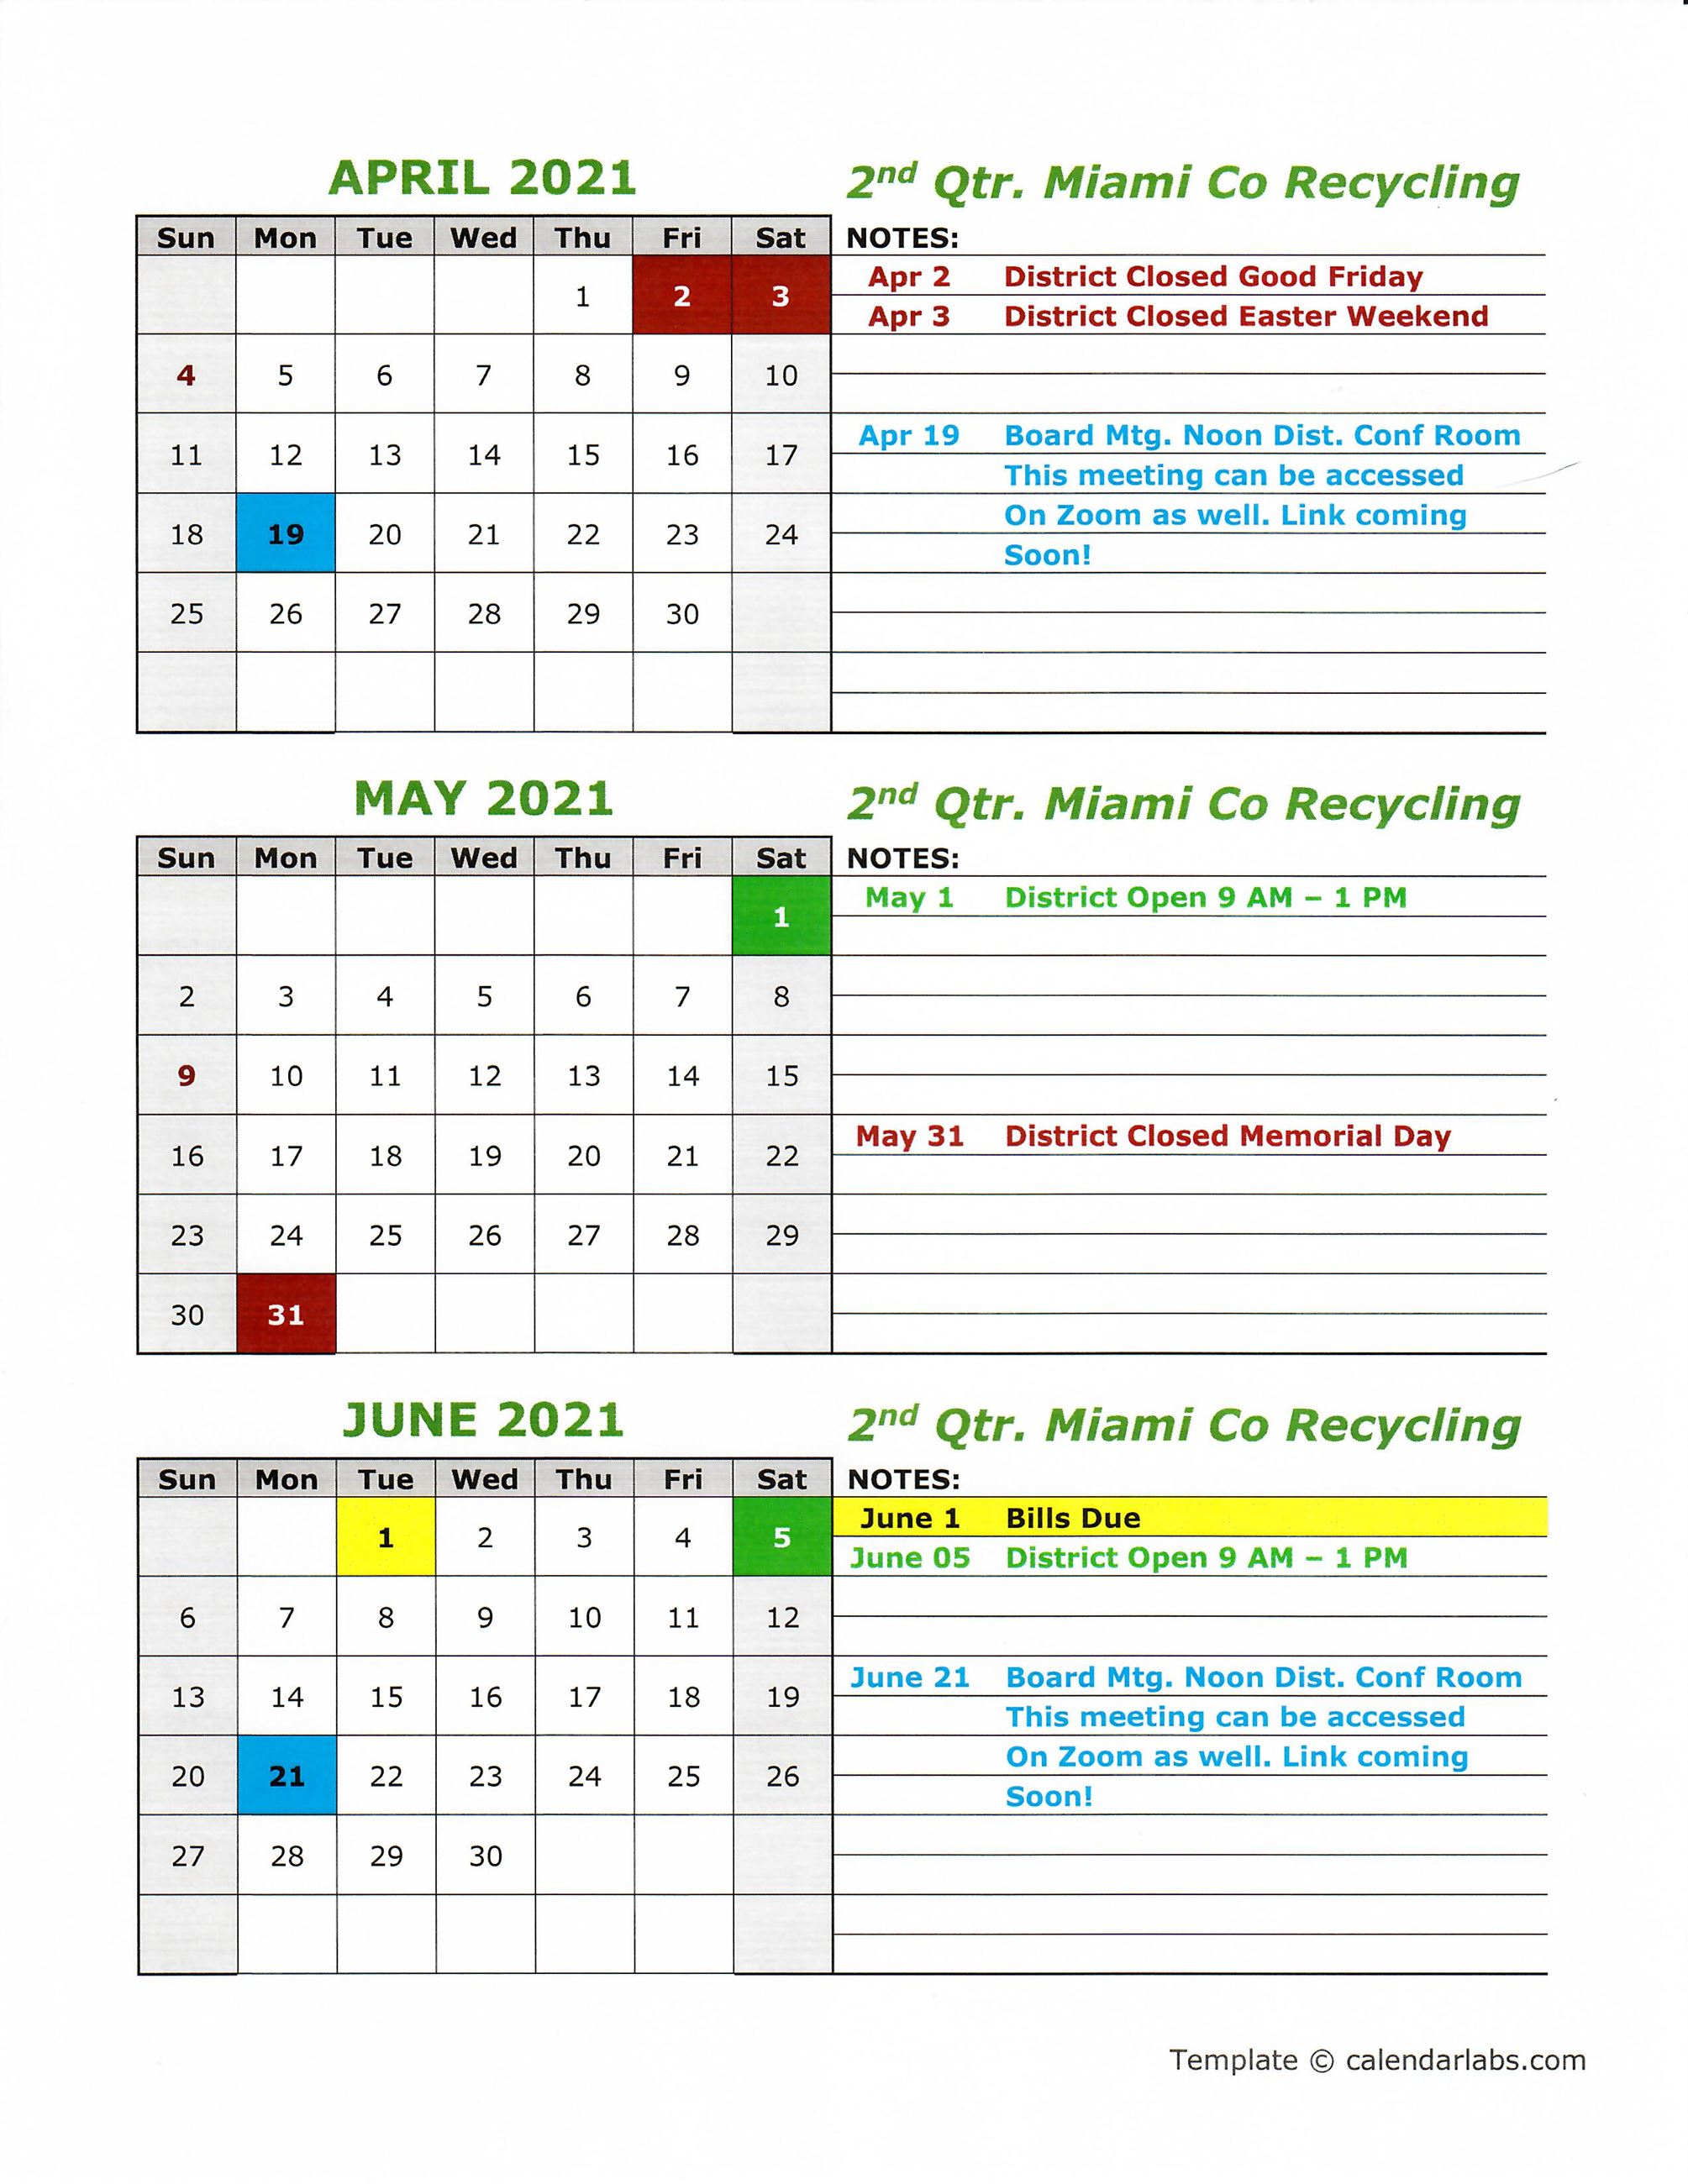 Updated 2021 Calendar 2nd qtr